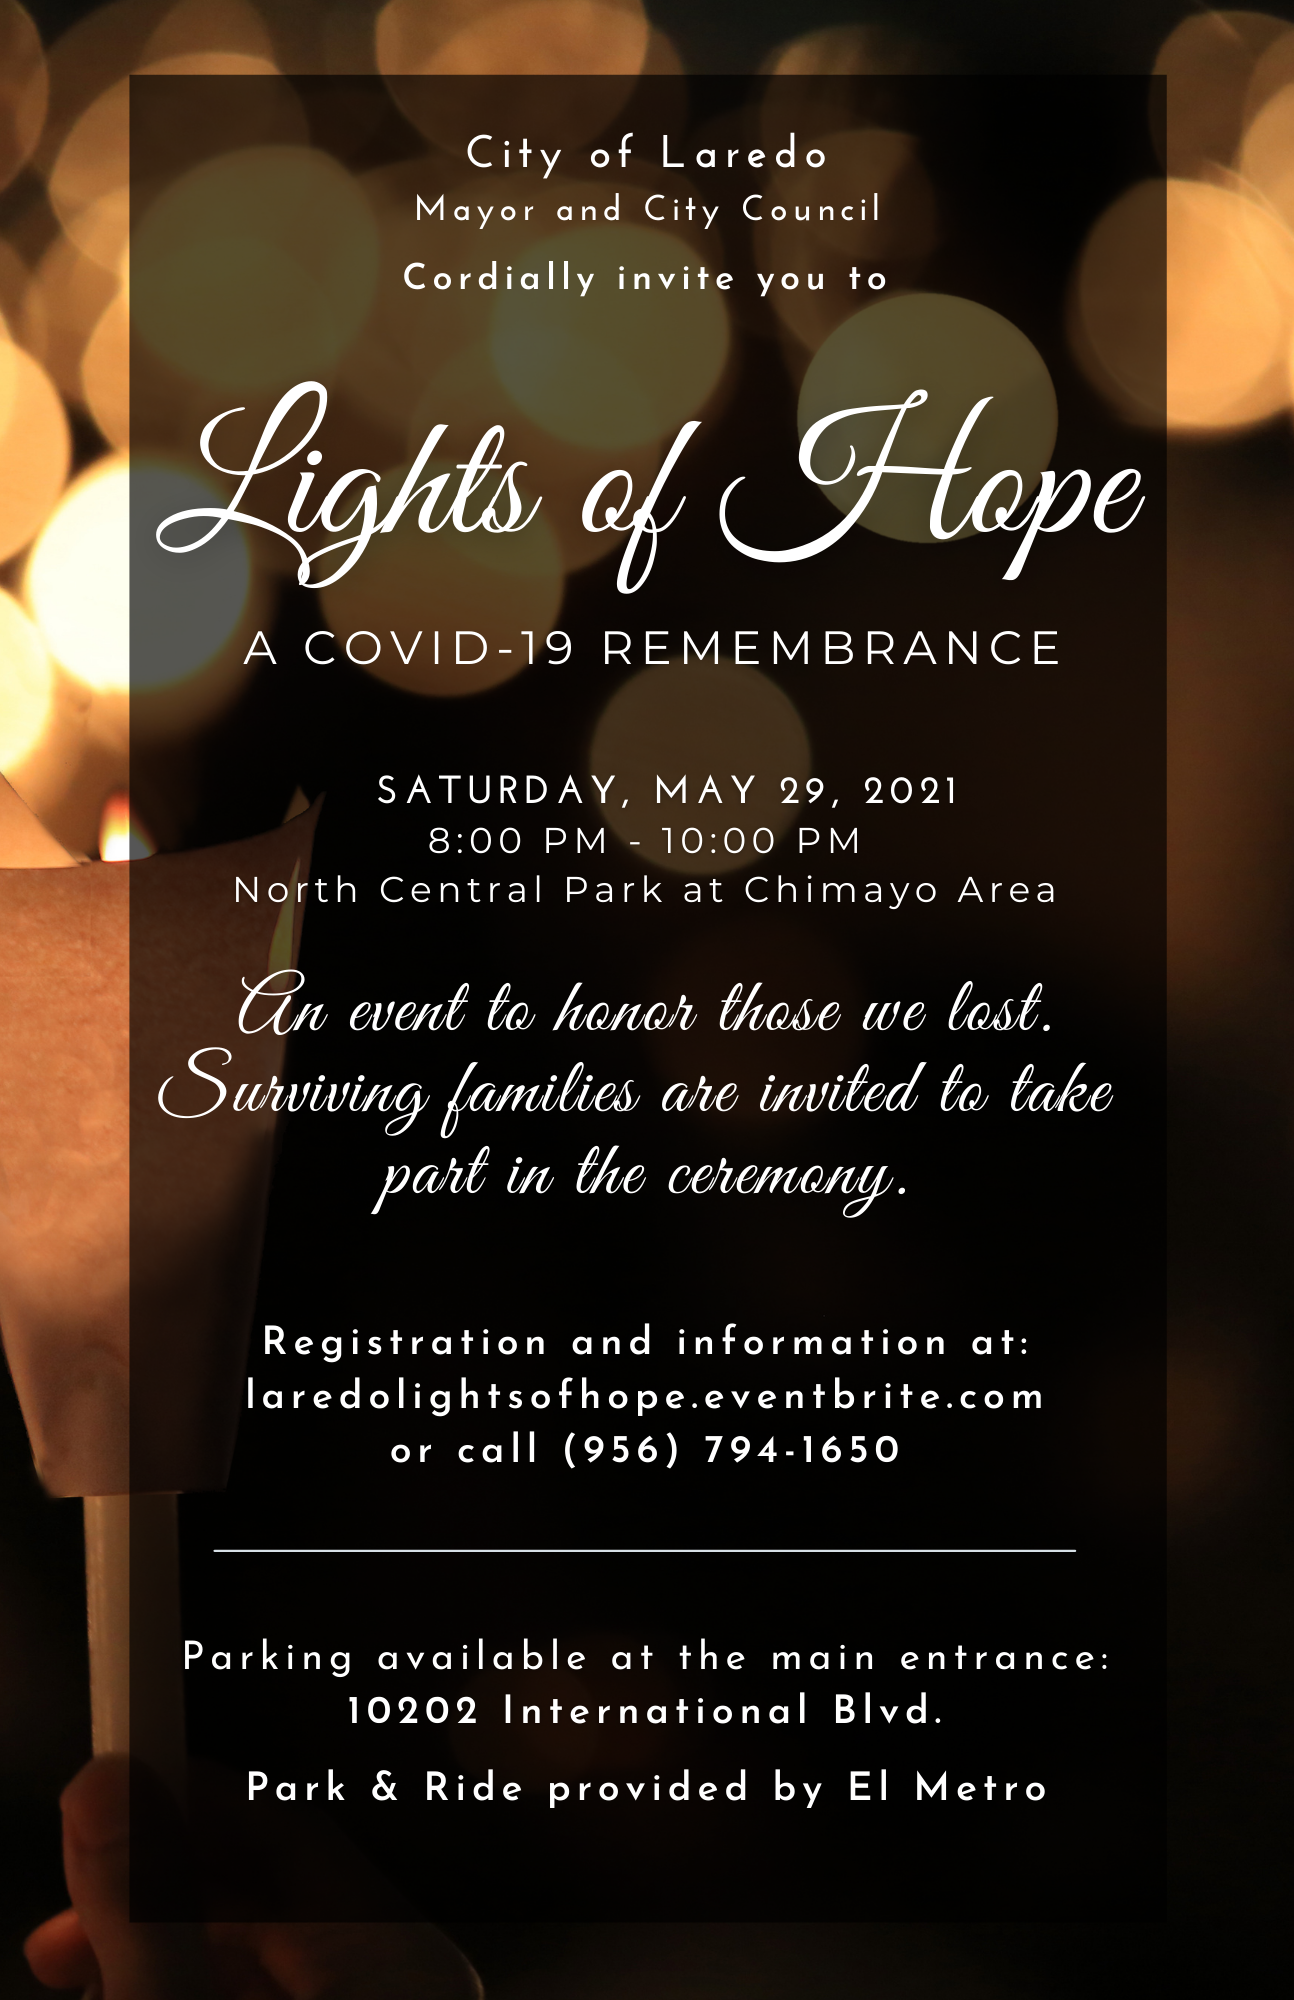 Lights of Hope.....A COVID -19 Remembrance